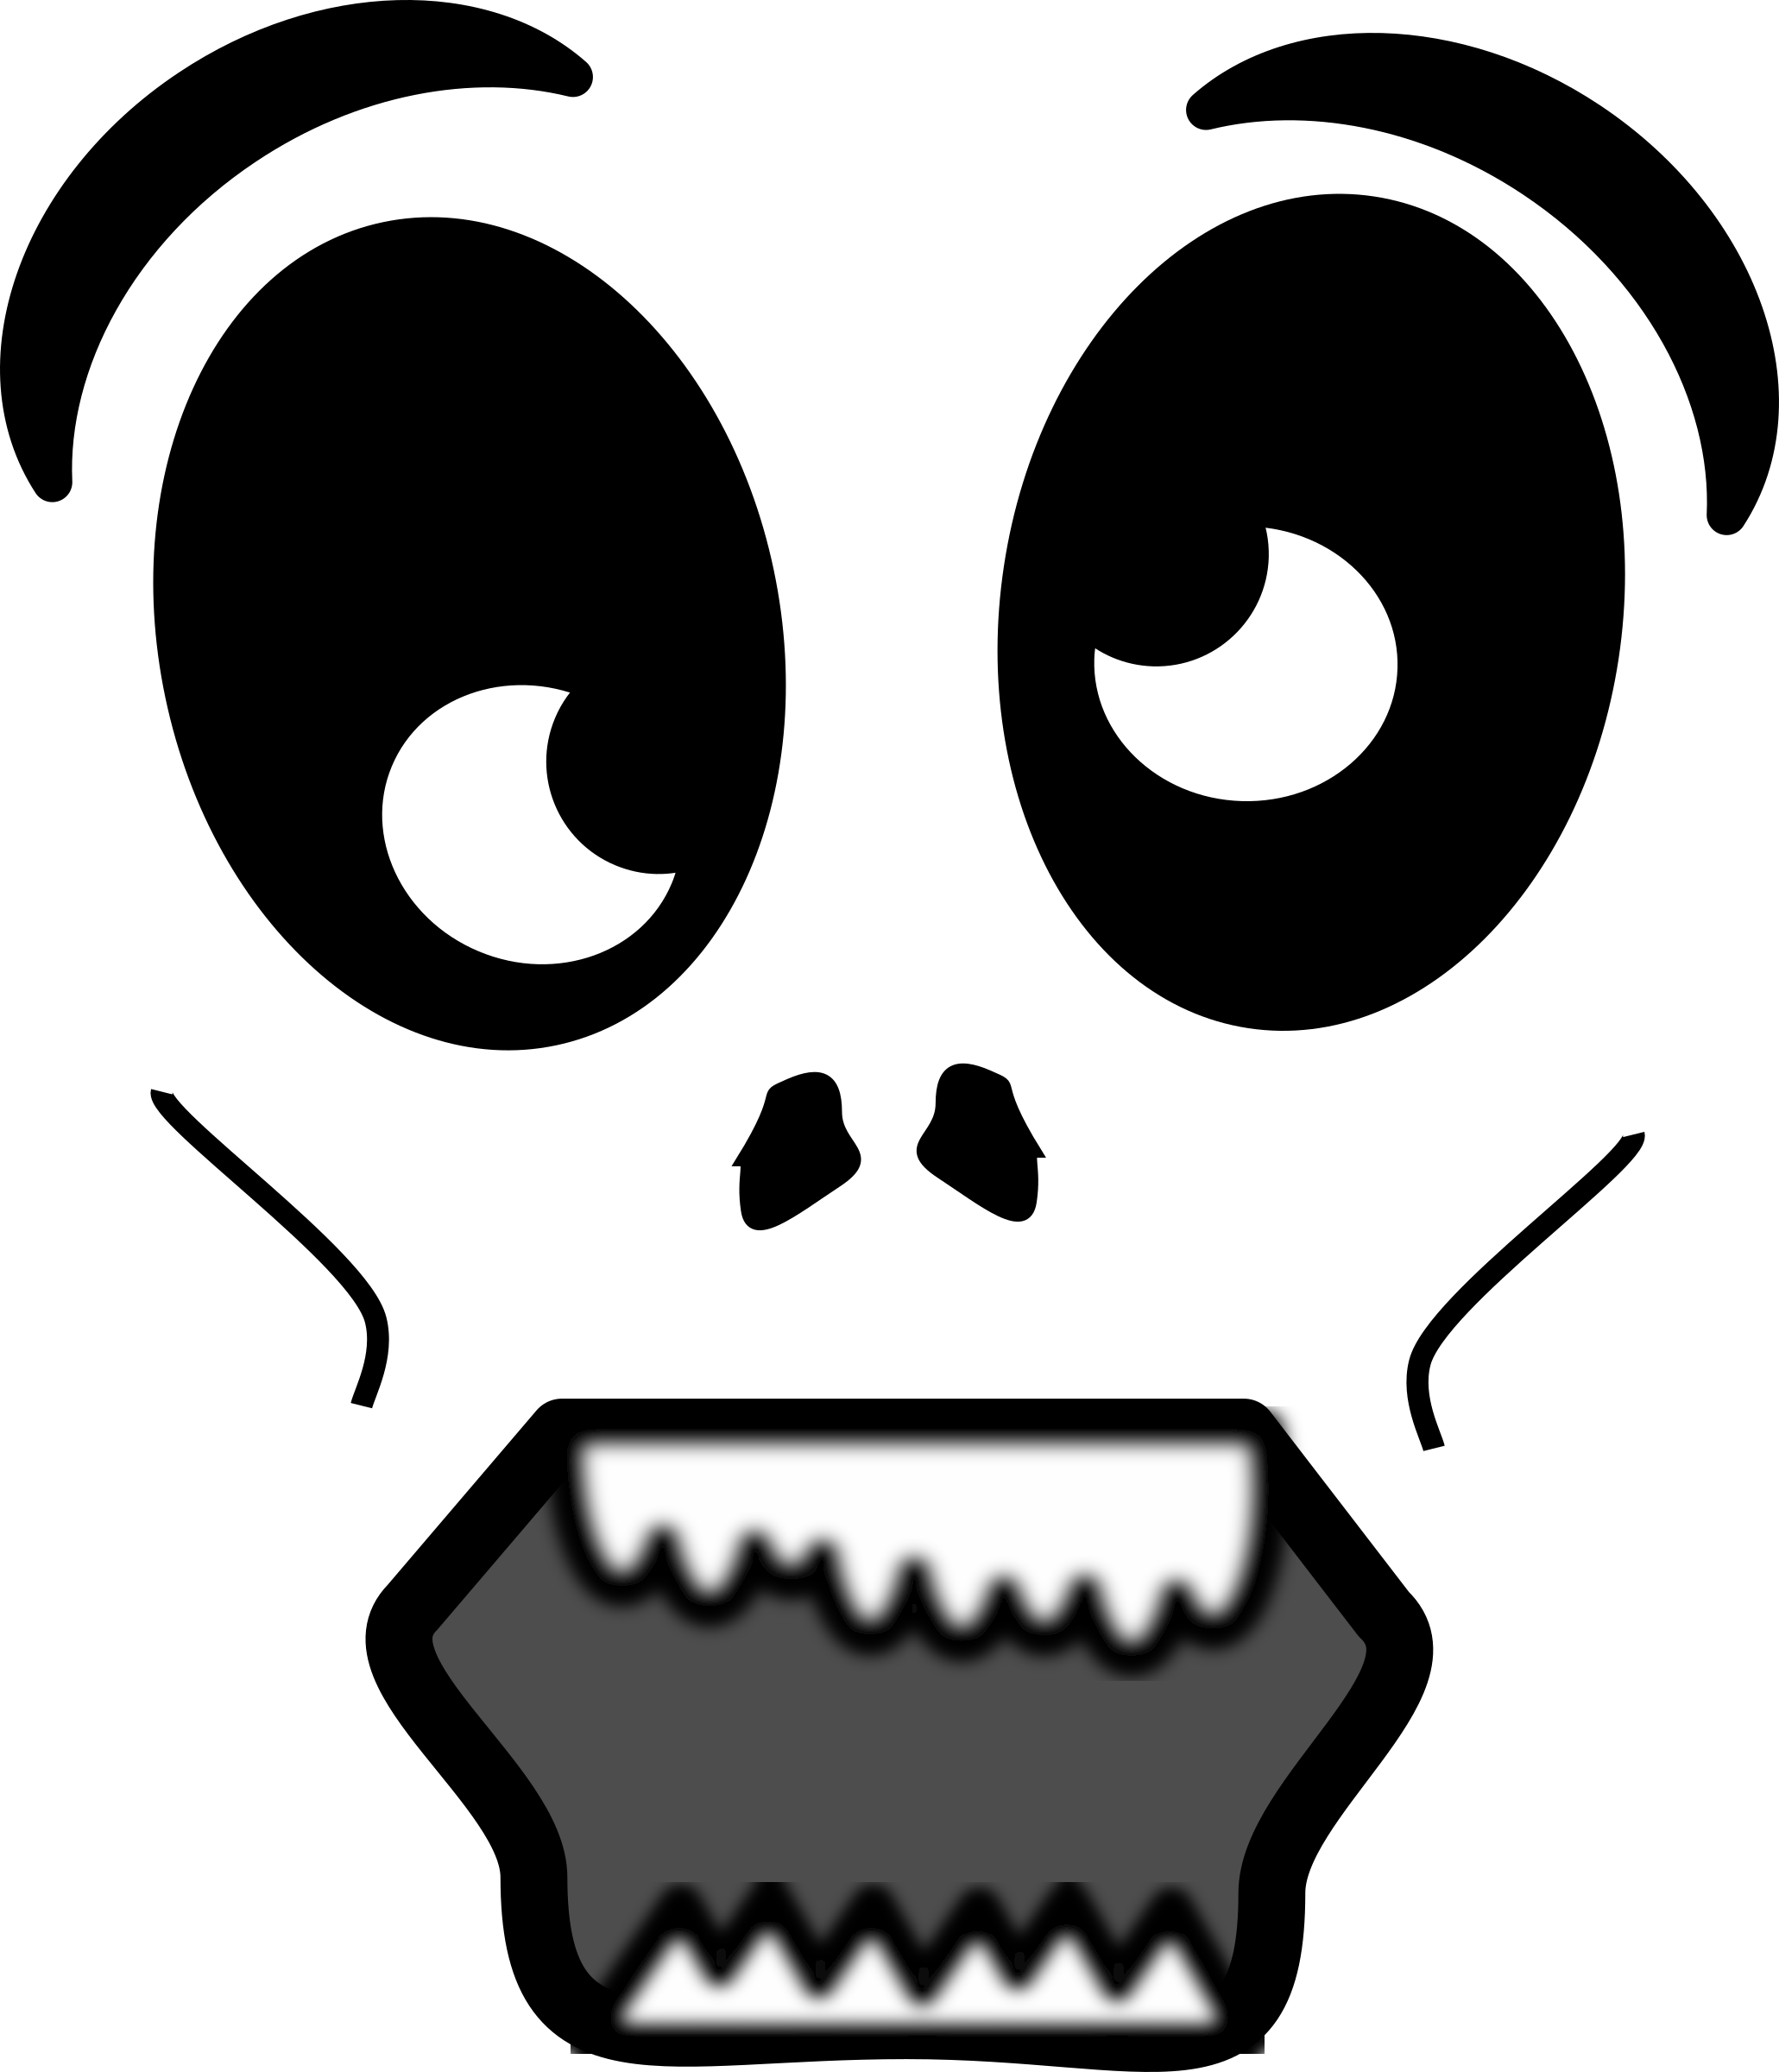 Clipart - Cartoon Zombie Face